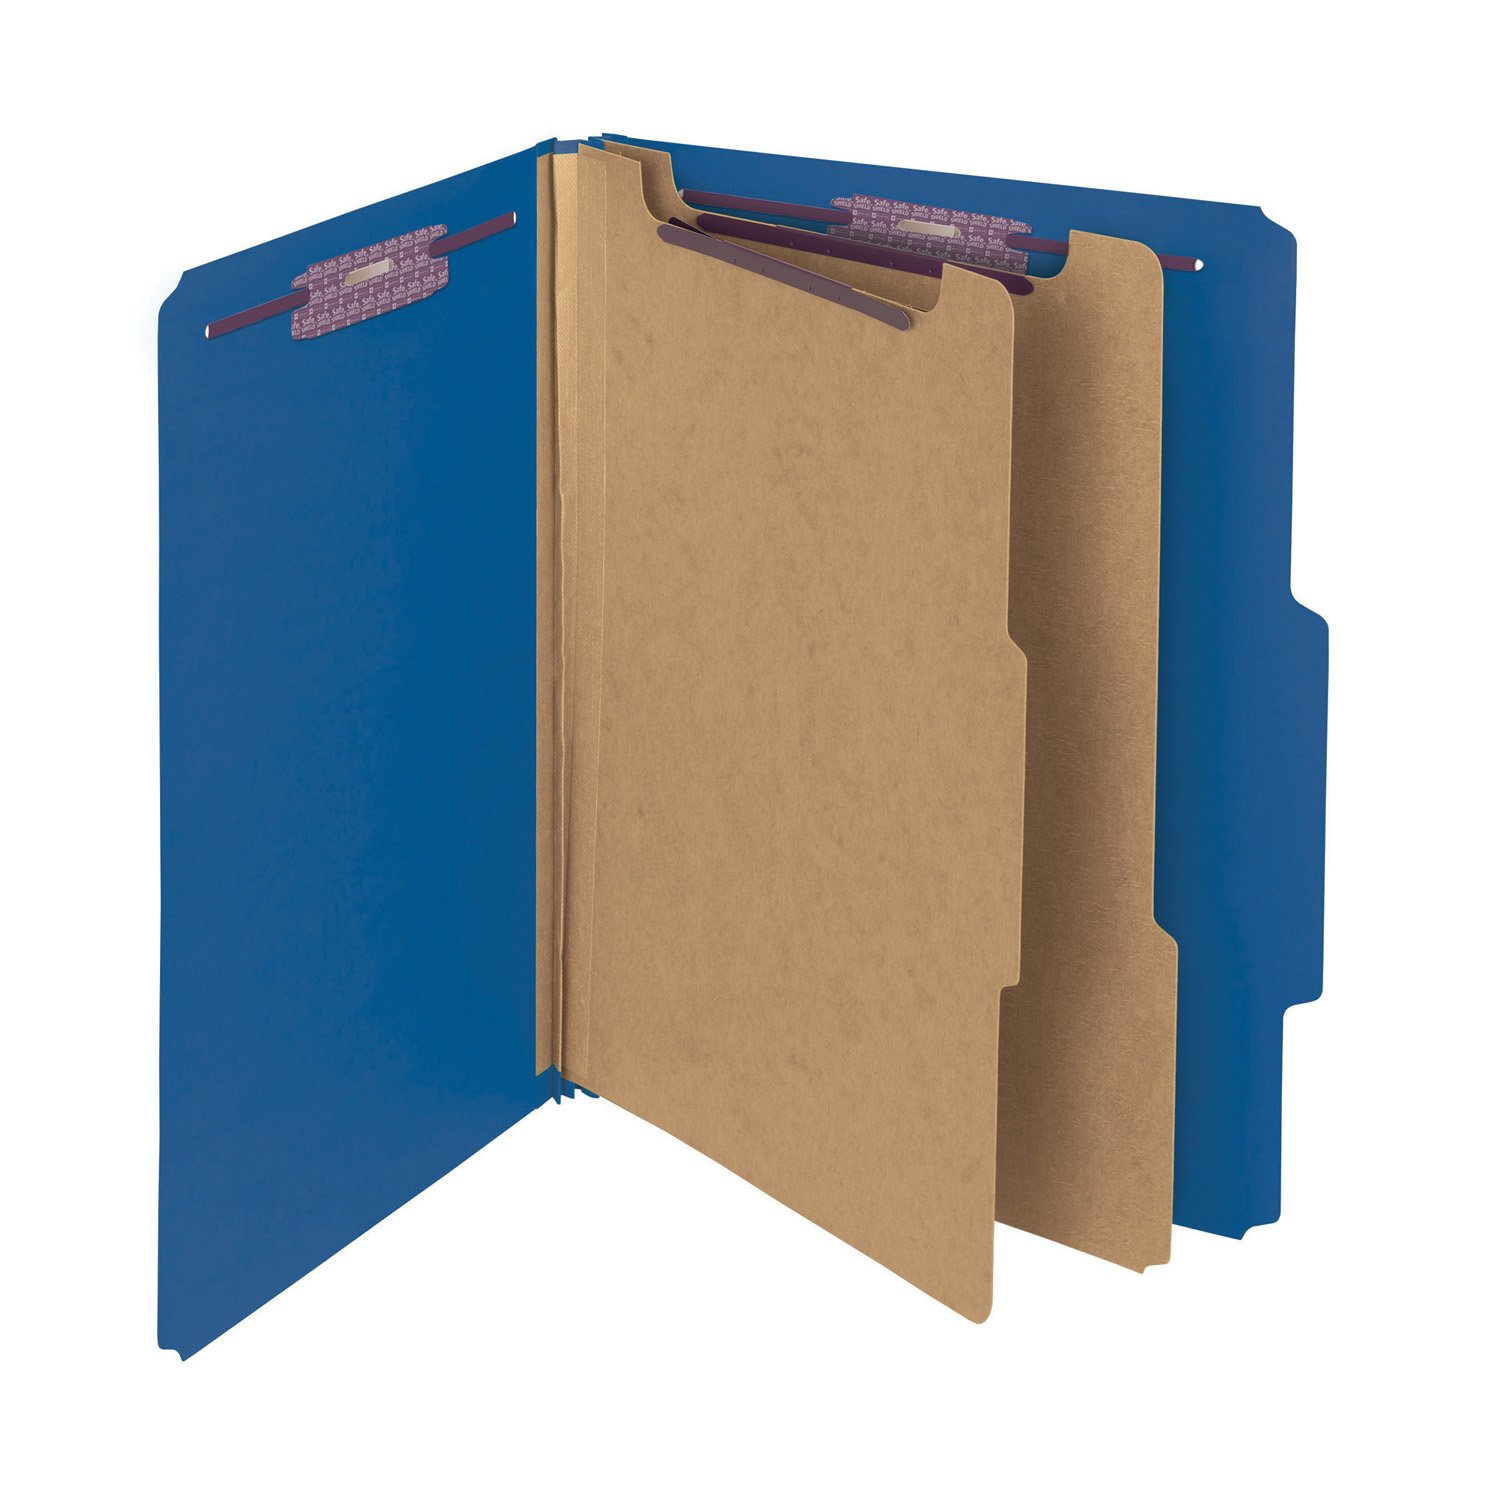 Smead PressGuard Classification File Folder with SafeSHIELD Fasteners, 2 Dividers, 2'' Expansion, Letter Size, Dark Blue, 10 per Box (14200) by Smead